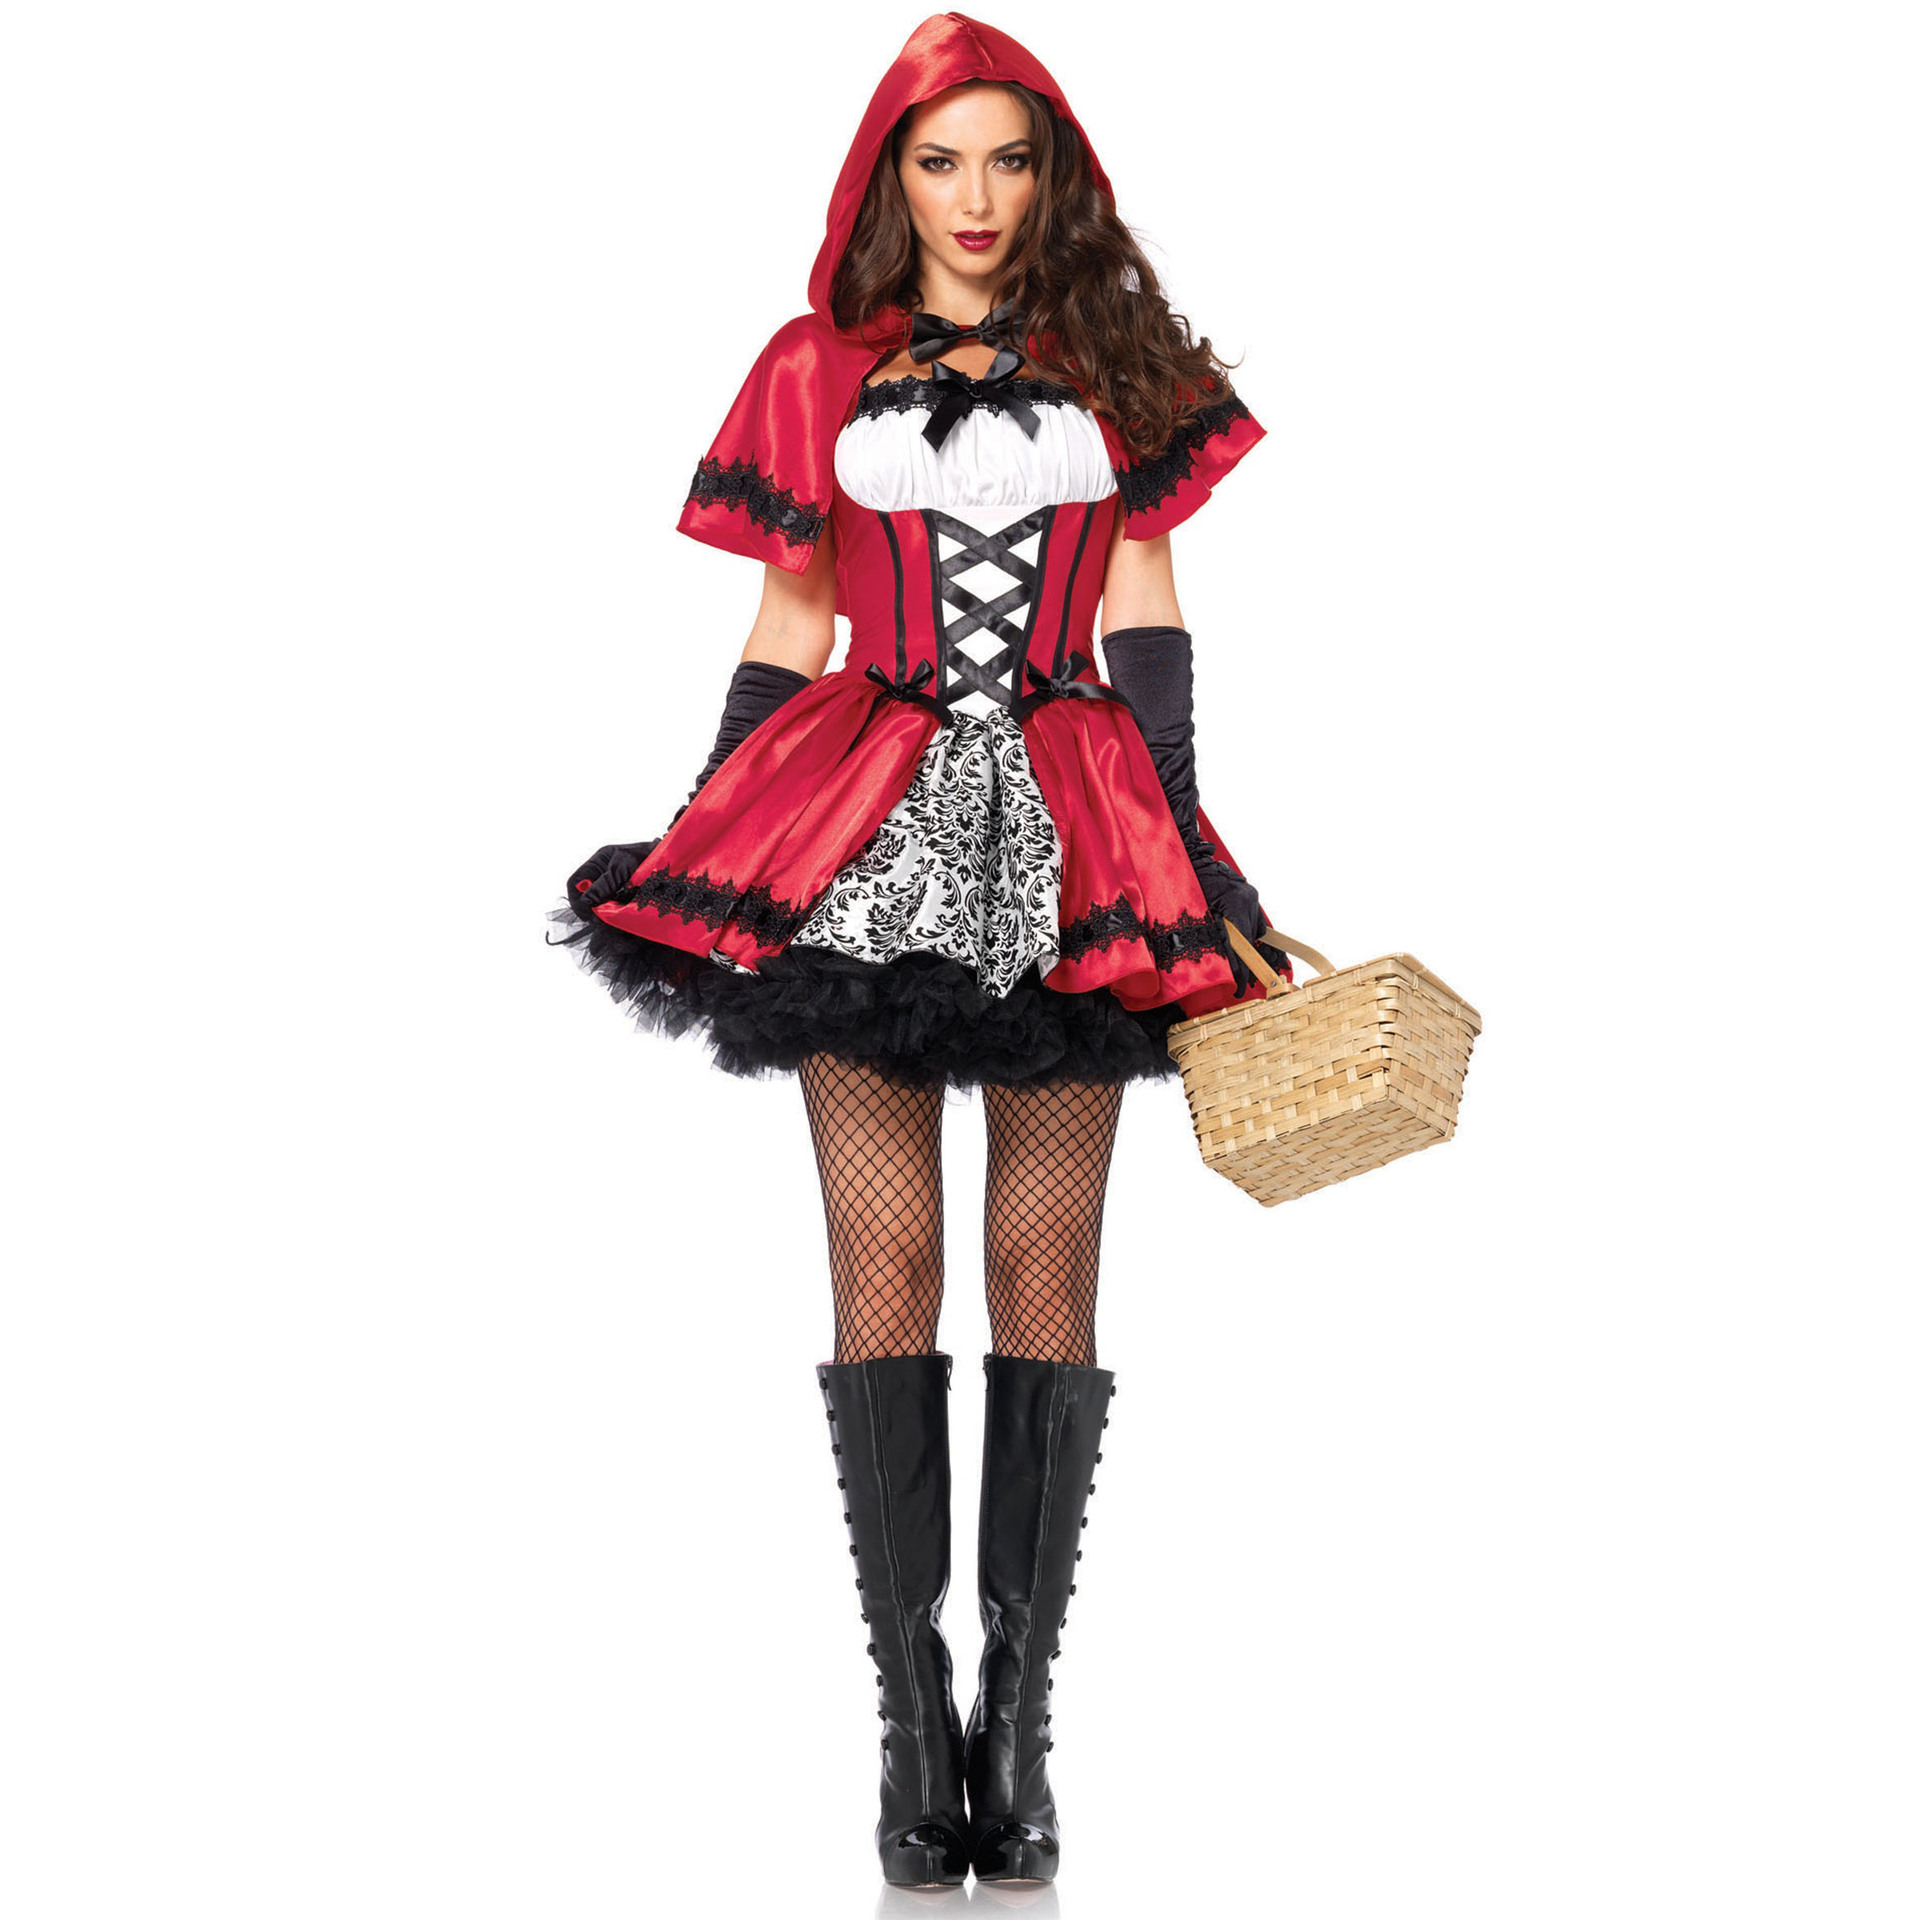 <font><b>Halloween</b></font> Clothing Little Red Riding Hood <font><b>Sexy</b></font> <font><b>Queen</b></font> Princess Uniform <font><b>Halloween</b></font> Service Character Play Game Uniform image